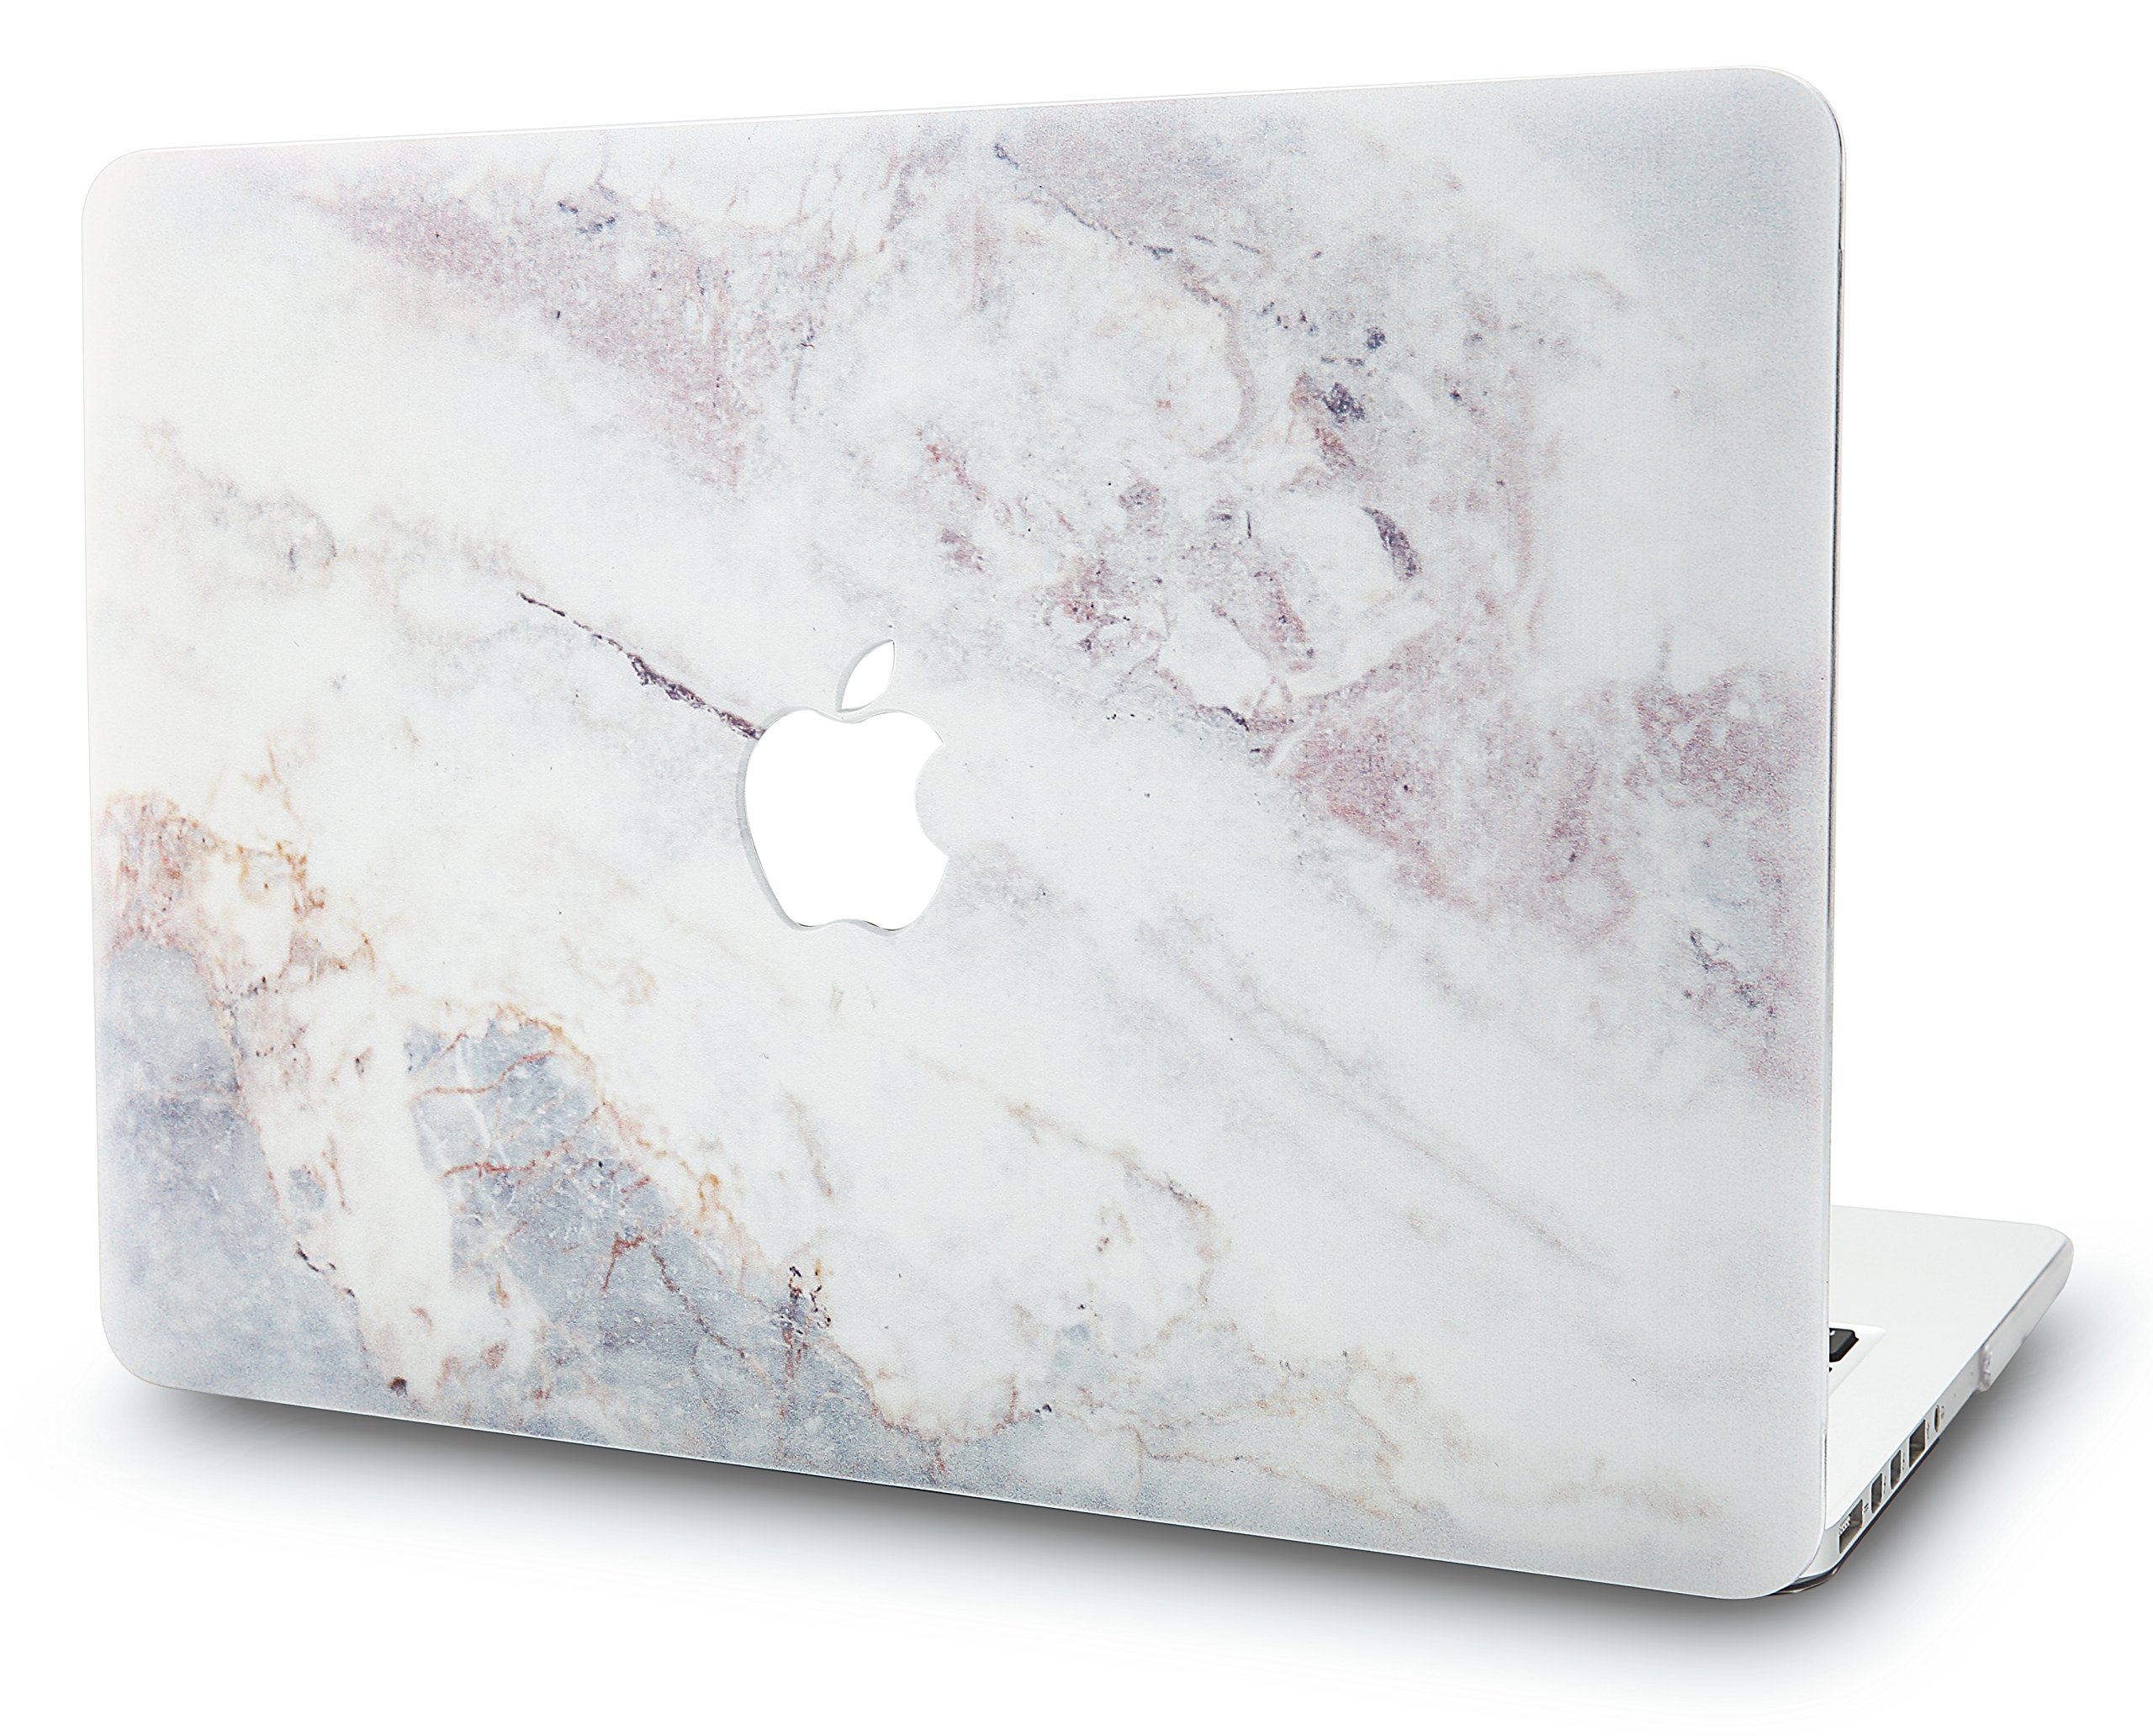 KEC Laptop Case for MacBook Pro 13'' (2019/2018/2017/2016) Plastic Hard Shell Cover A1989/A1706/A1708 Touch Bar (White Marble 2)